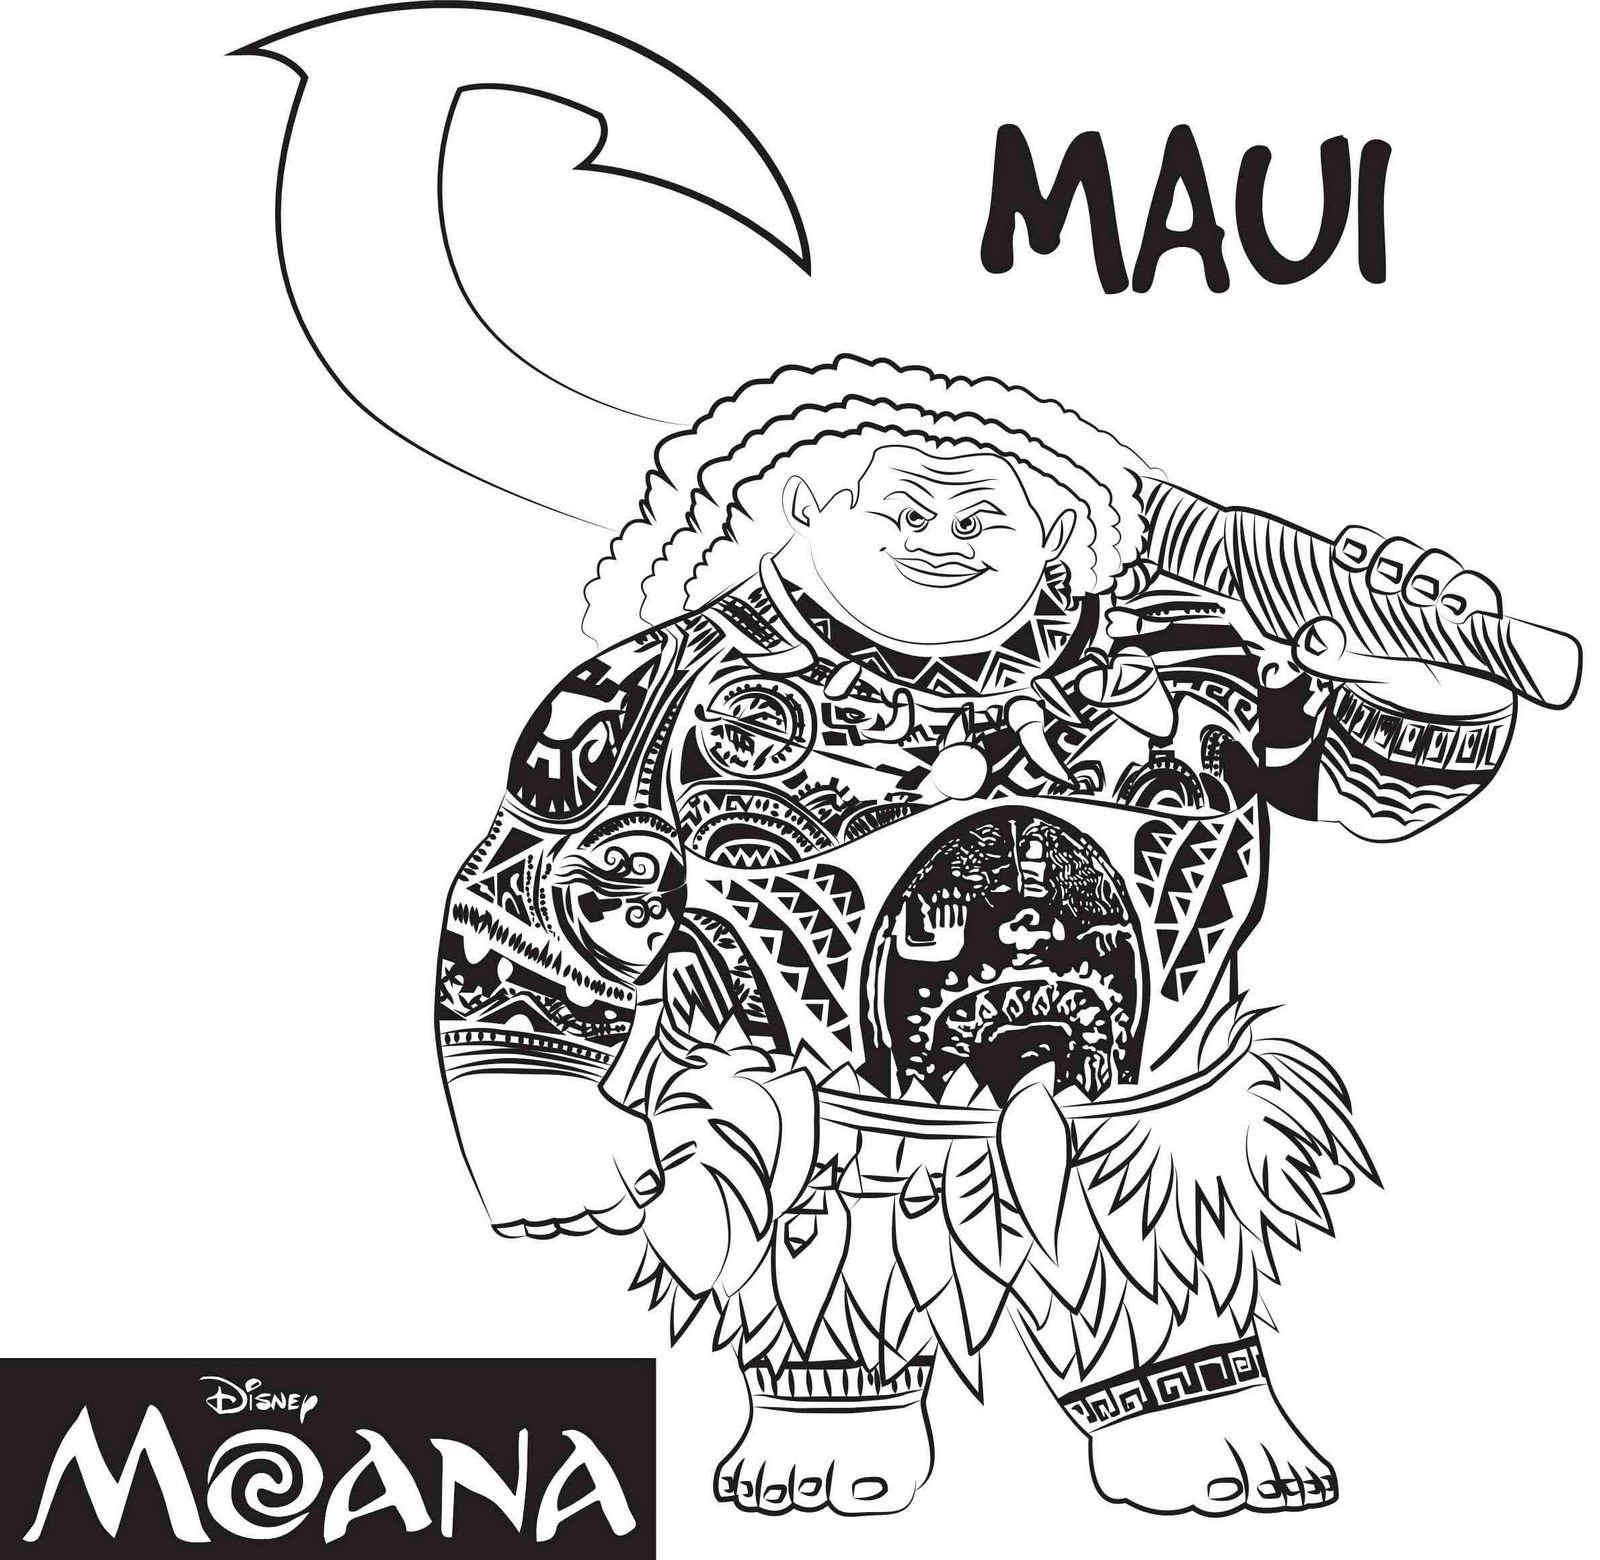 maui from moana coloring page